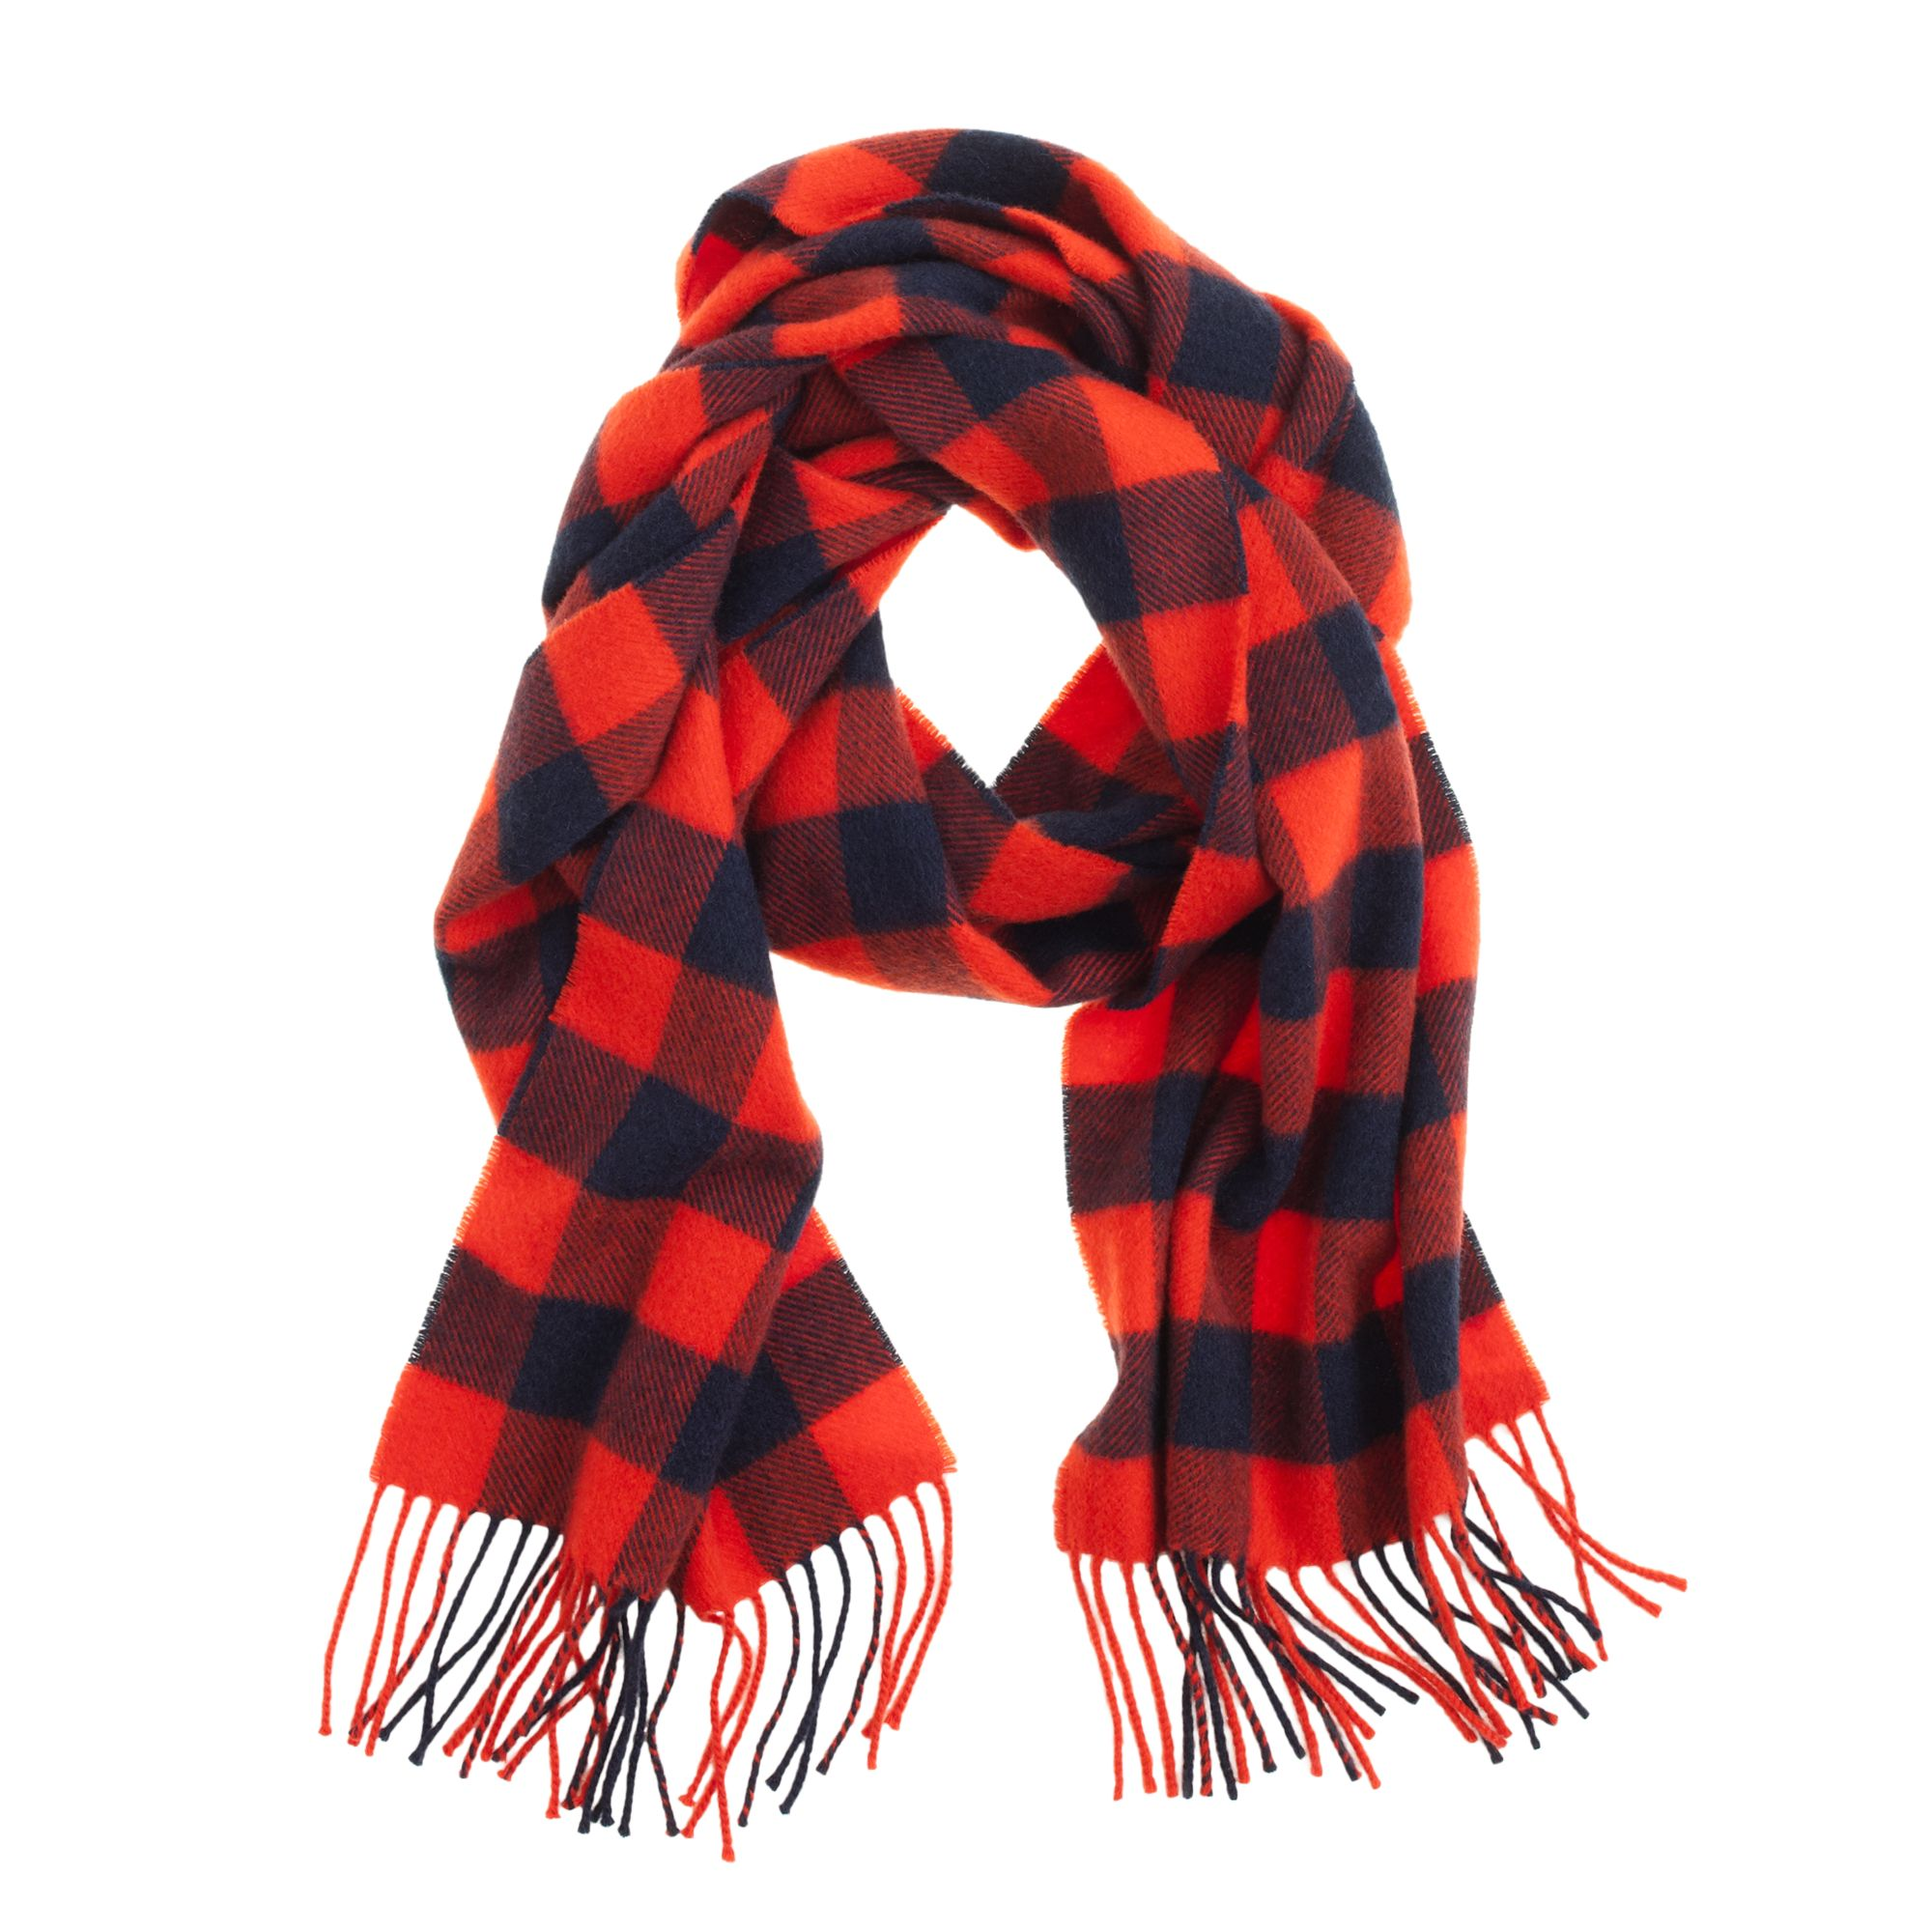 What plaid scarves are in